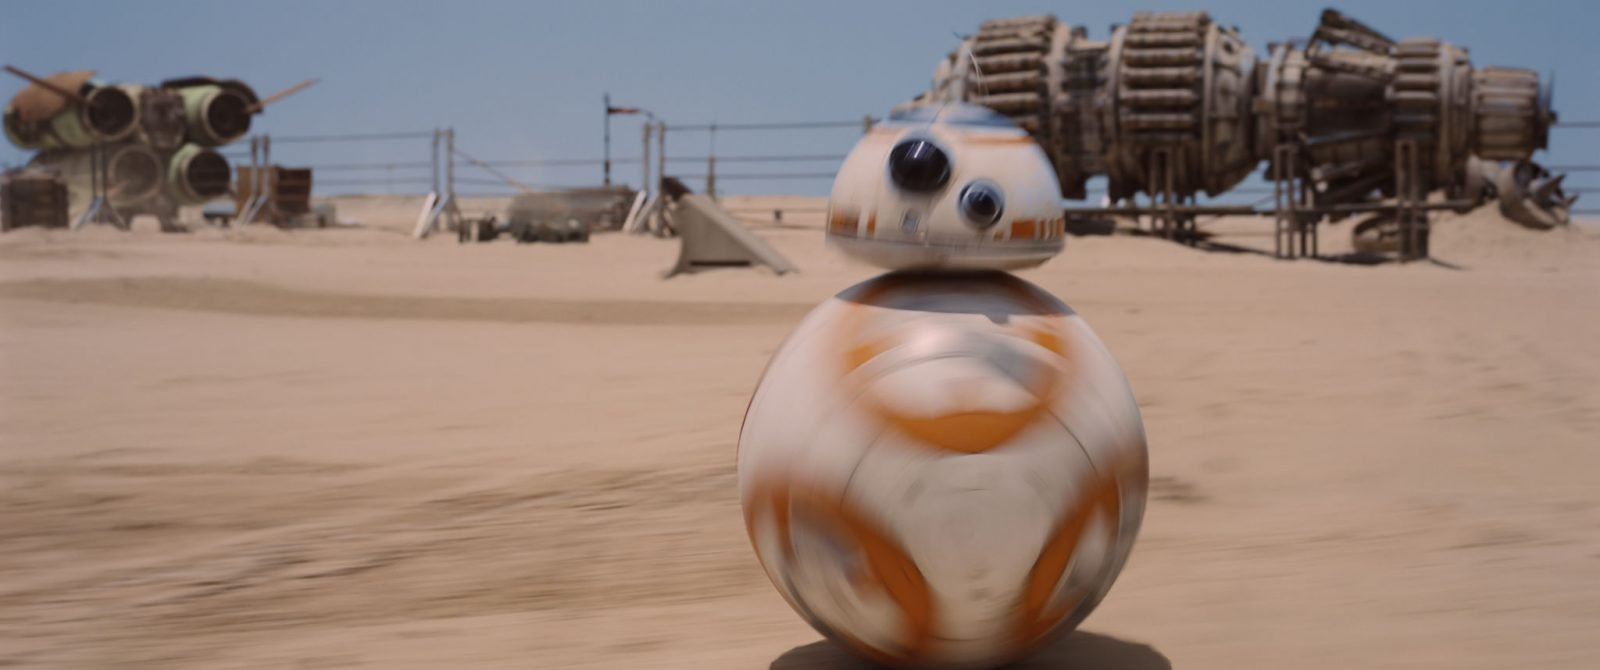 Star Wars VII The Force Awakens 39 - BB-8 on sand in Jakku